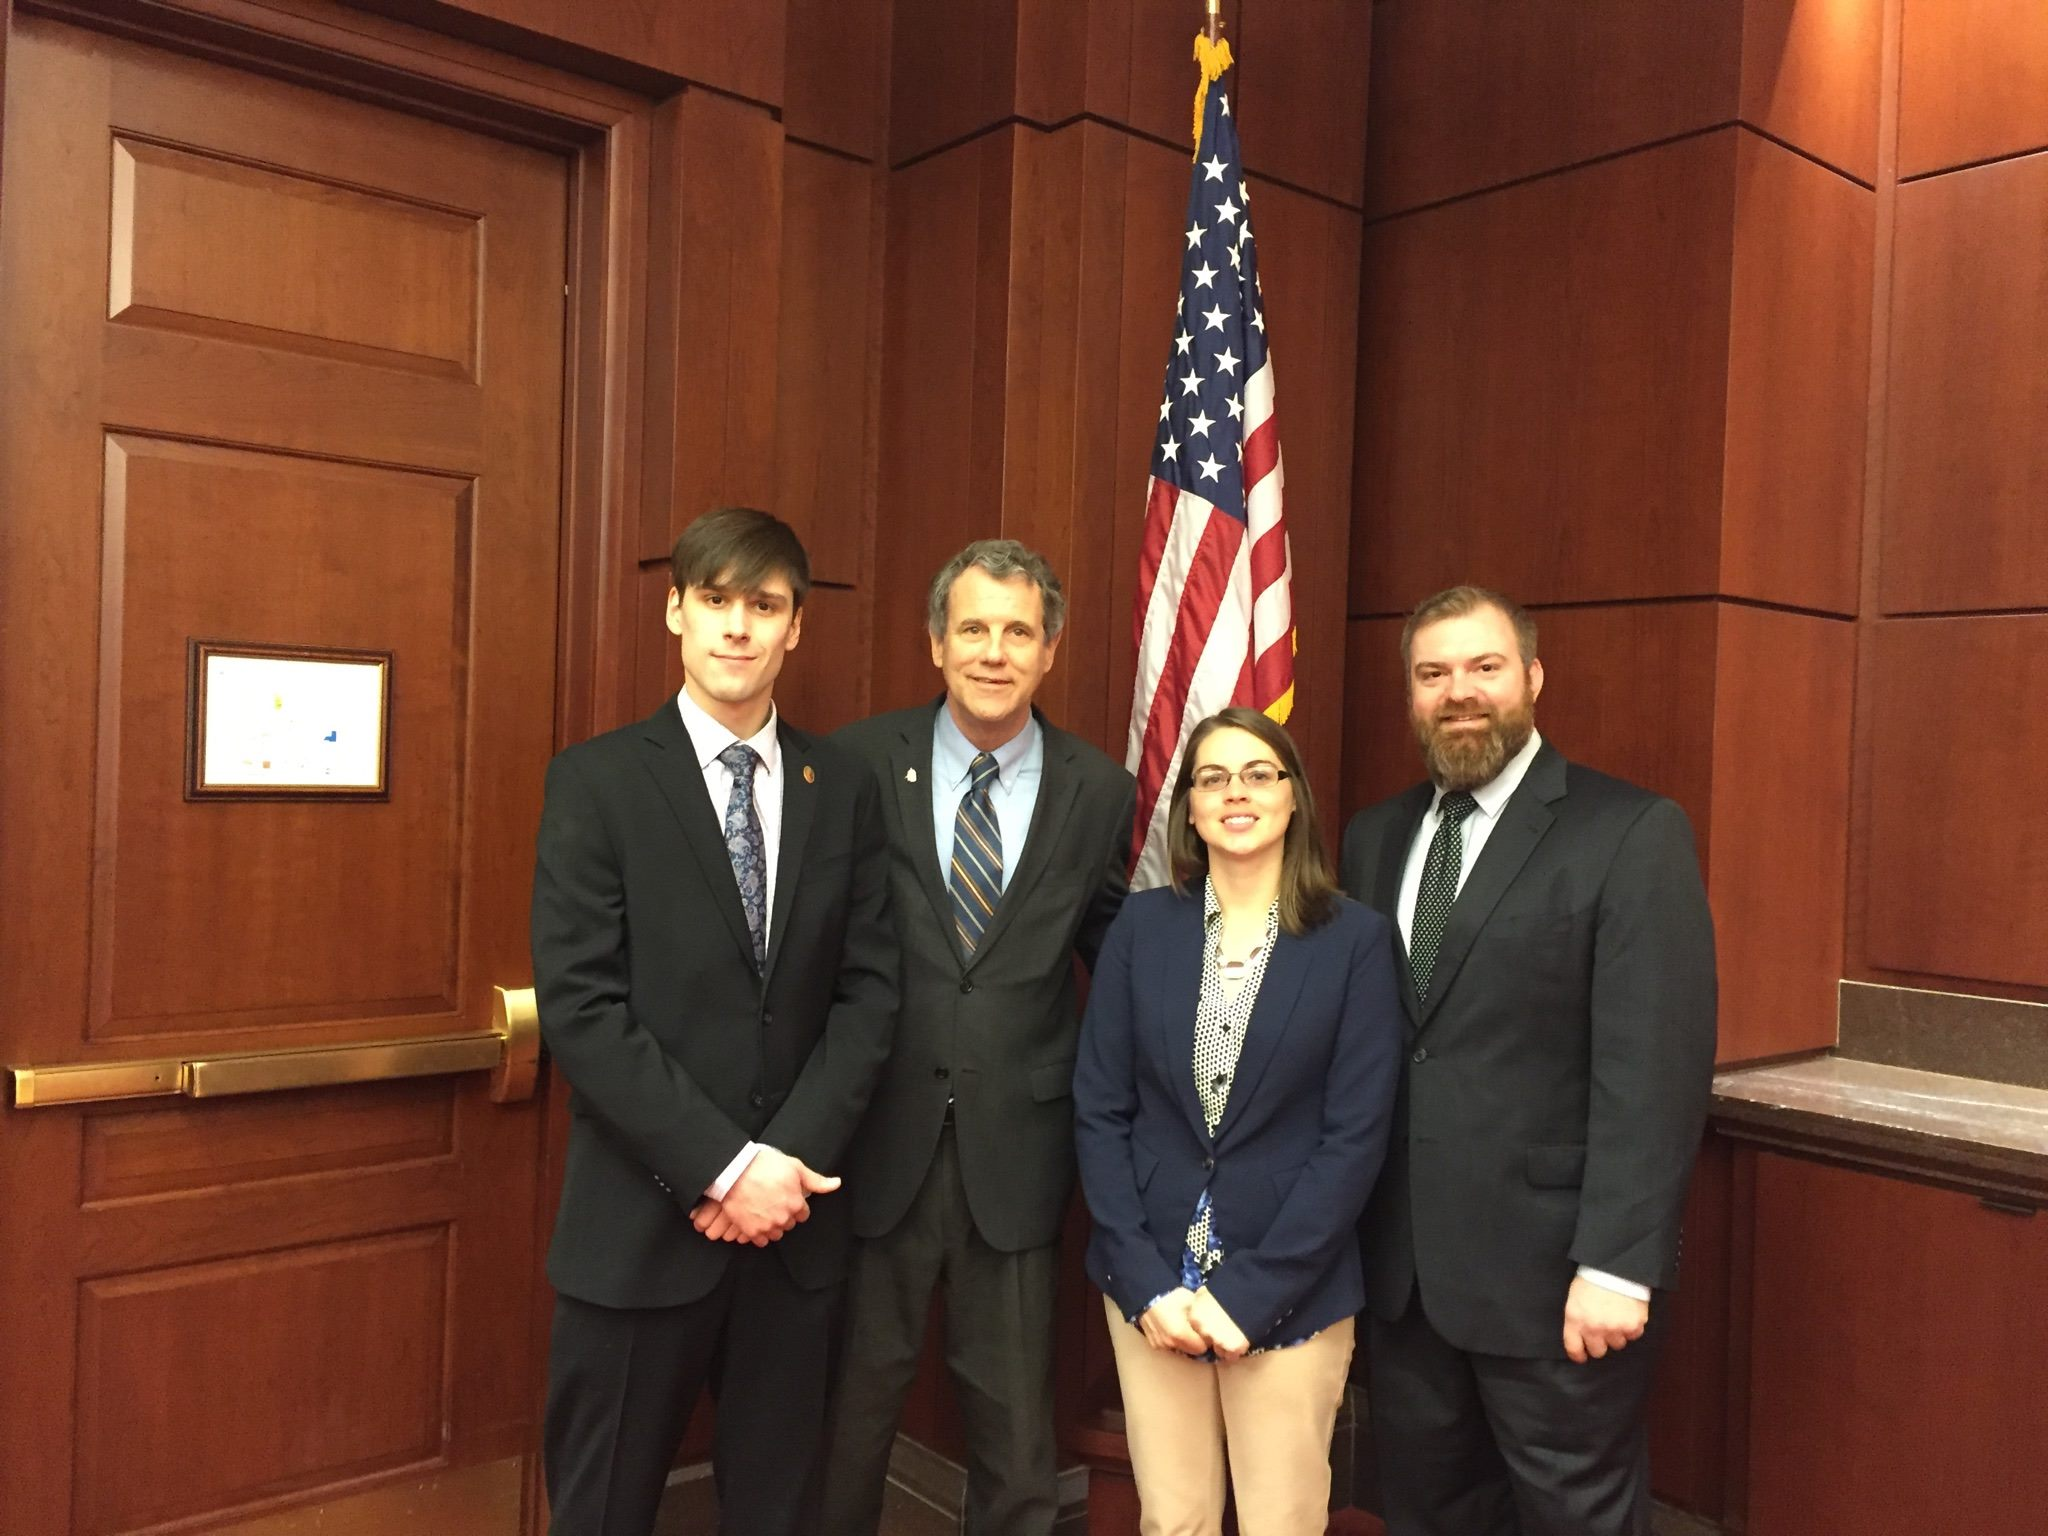 Jack Turner, the Vice-Chair of the Northeast Ohio Group of the Sierra Club Chapter of Ohio, meeting with Senator Sherrod Brown. From left to right, Jack Turner, Sherrod Brown, Samantha Allen, a staff member of Senator Brown and Dan Sawmiller, a senior campaign representative of the Sierra Club.